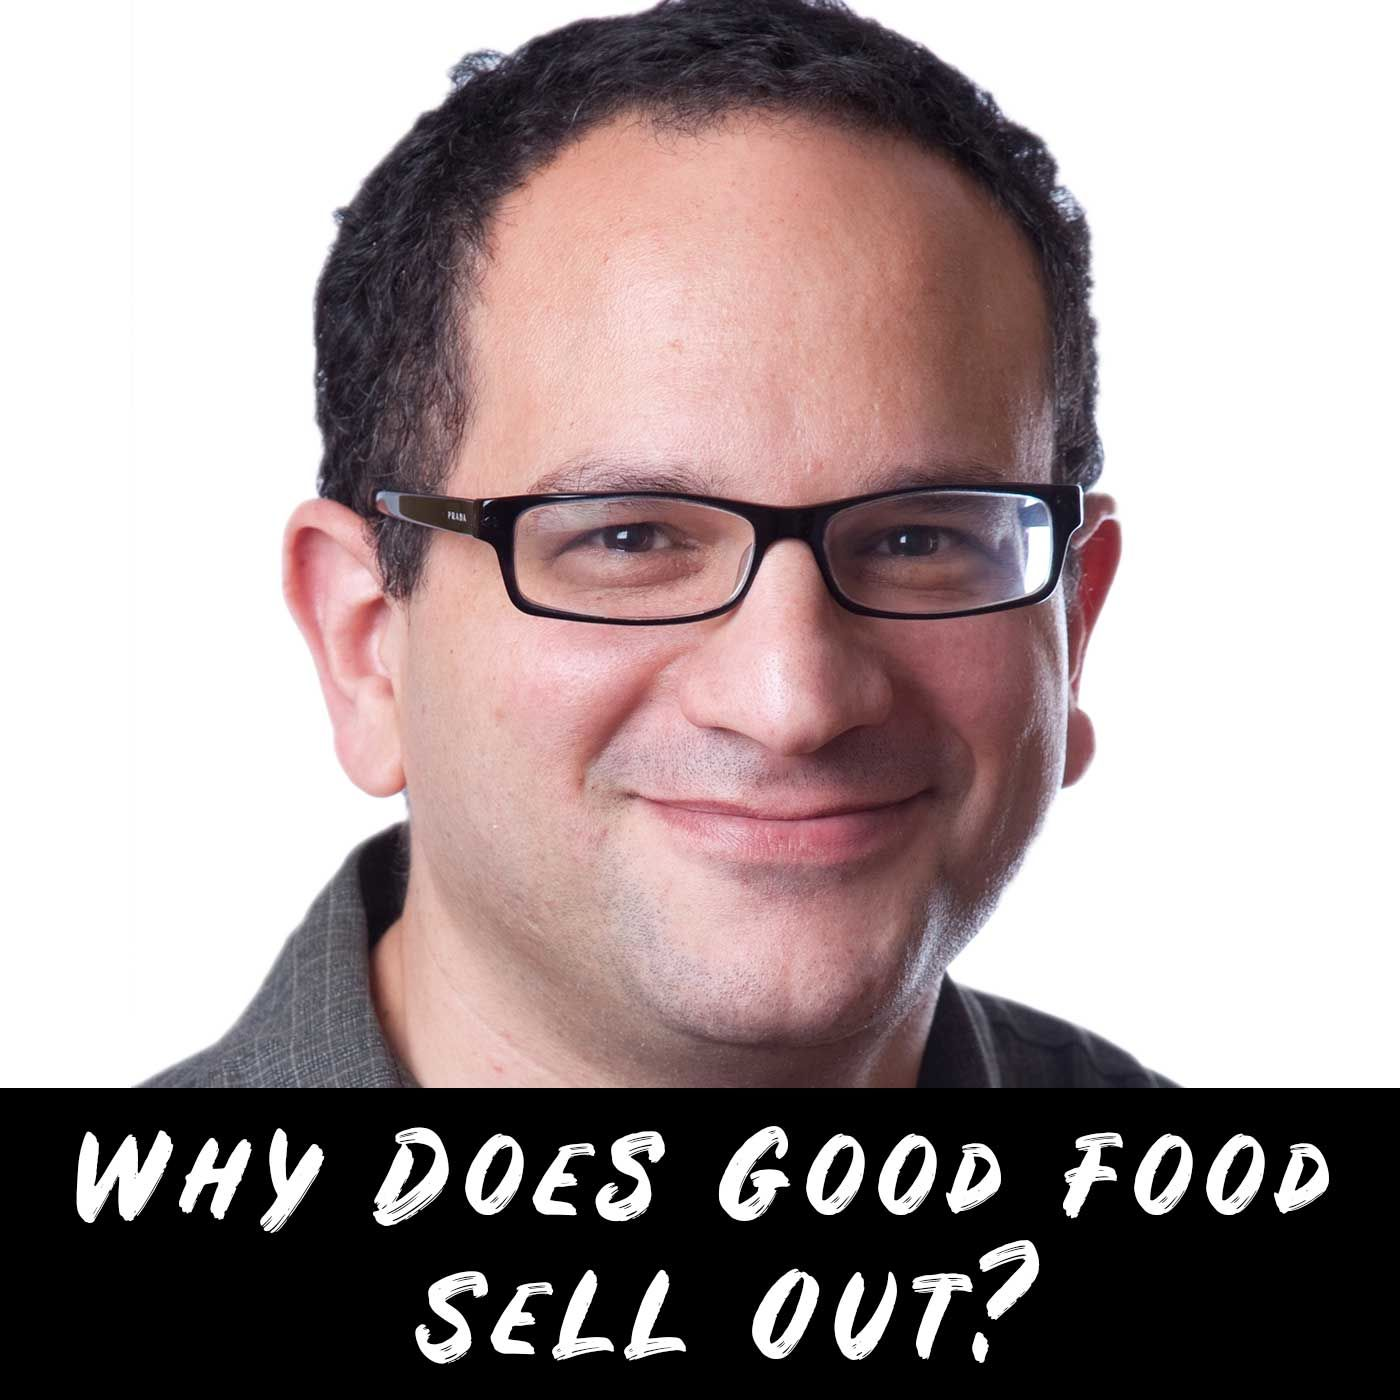 Why Does Good Food Sell Out?